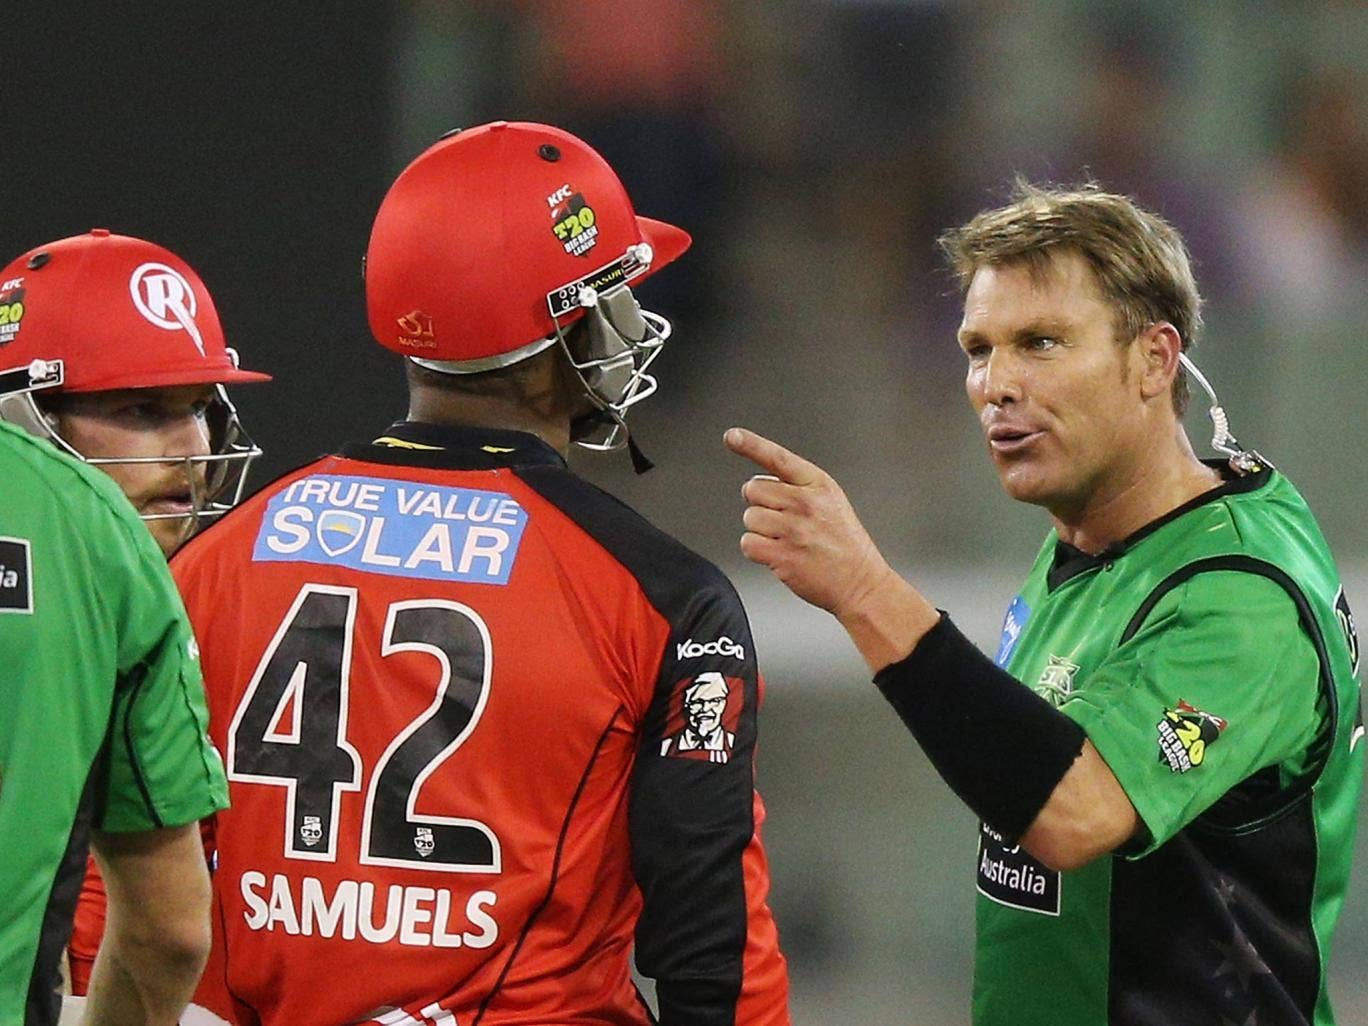 Shane Warne comes together with Marlon Samuels